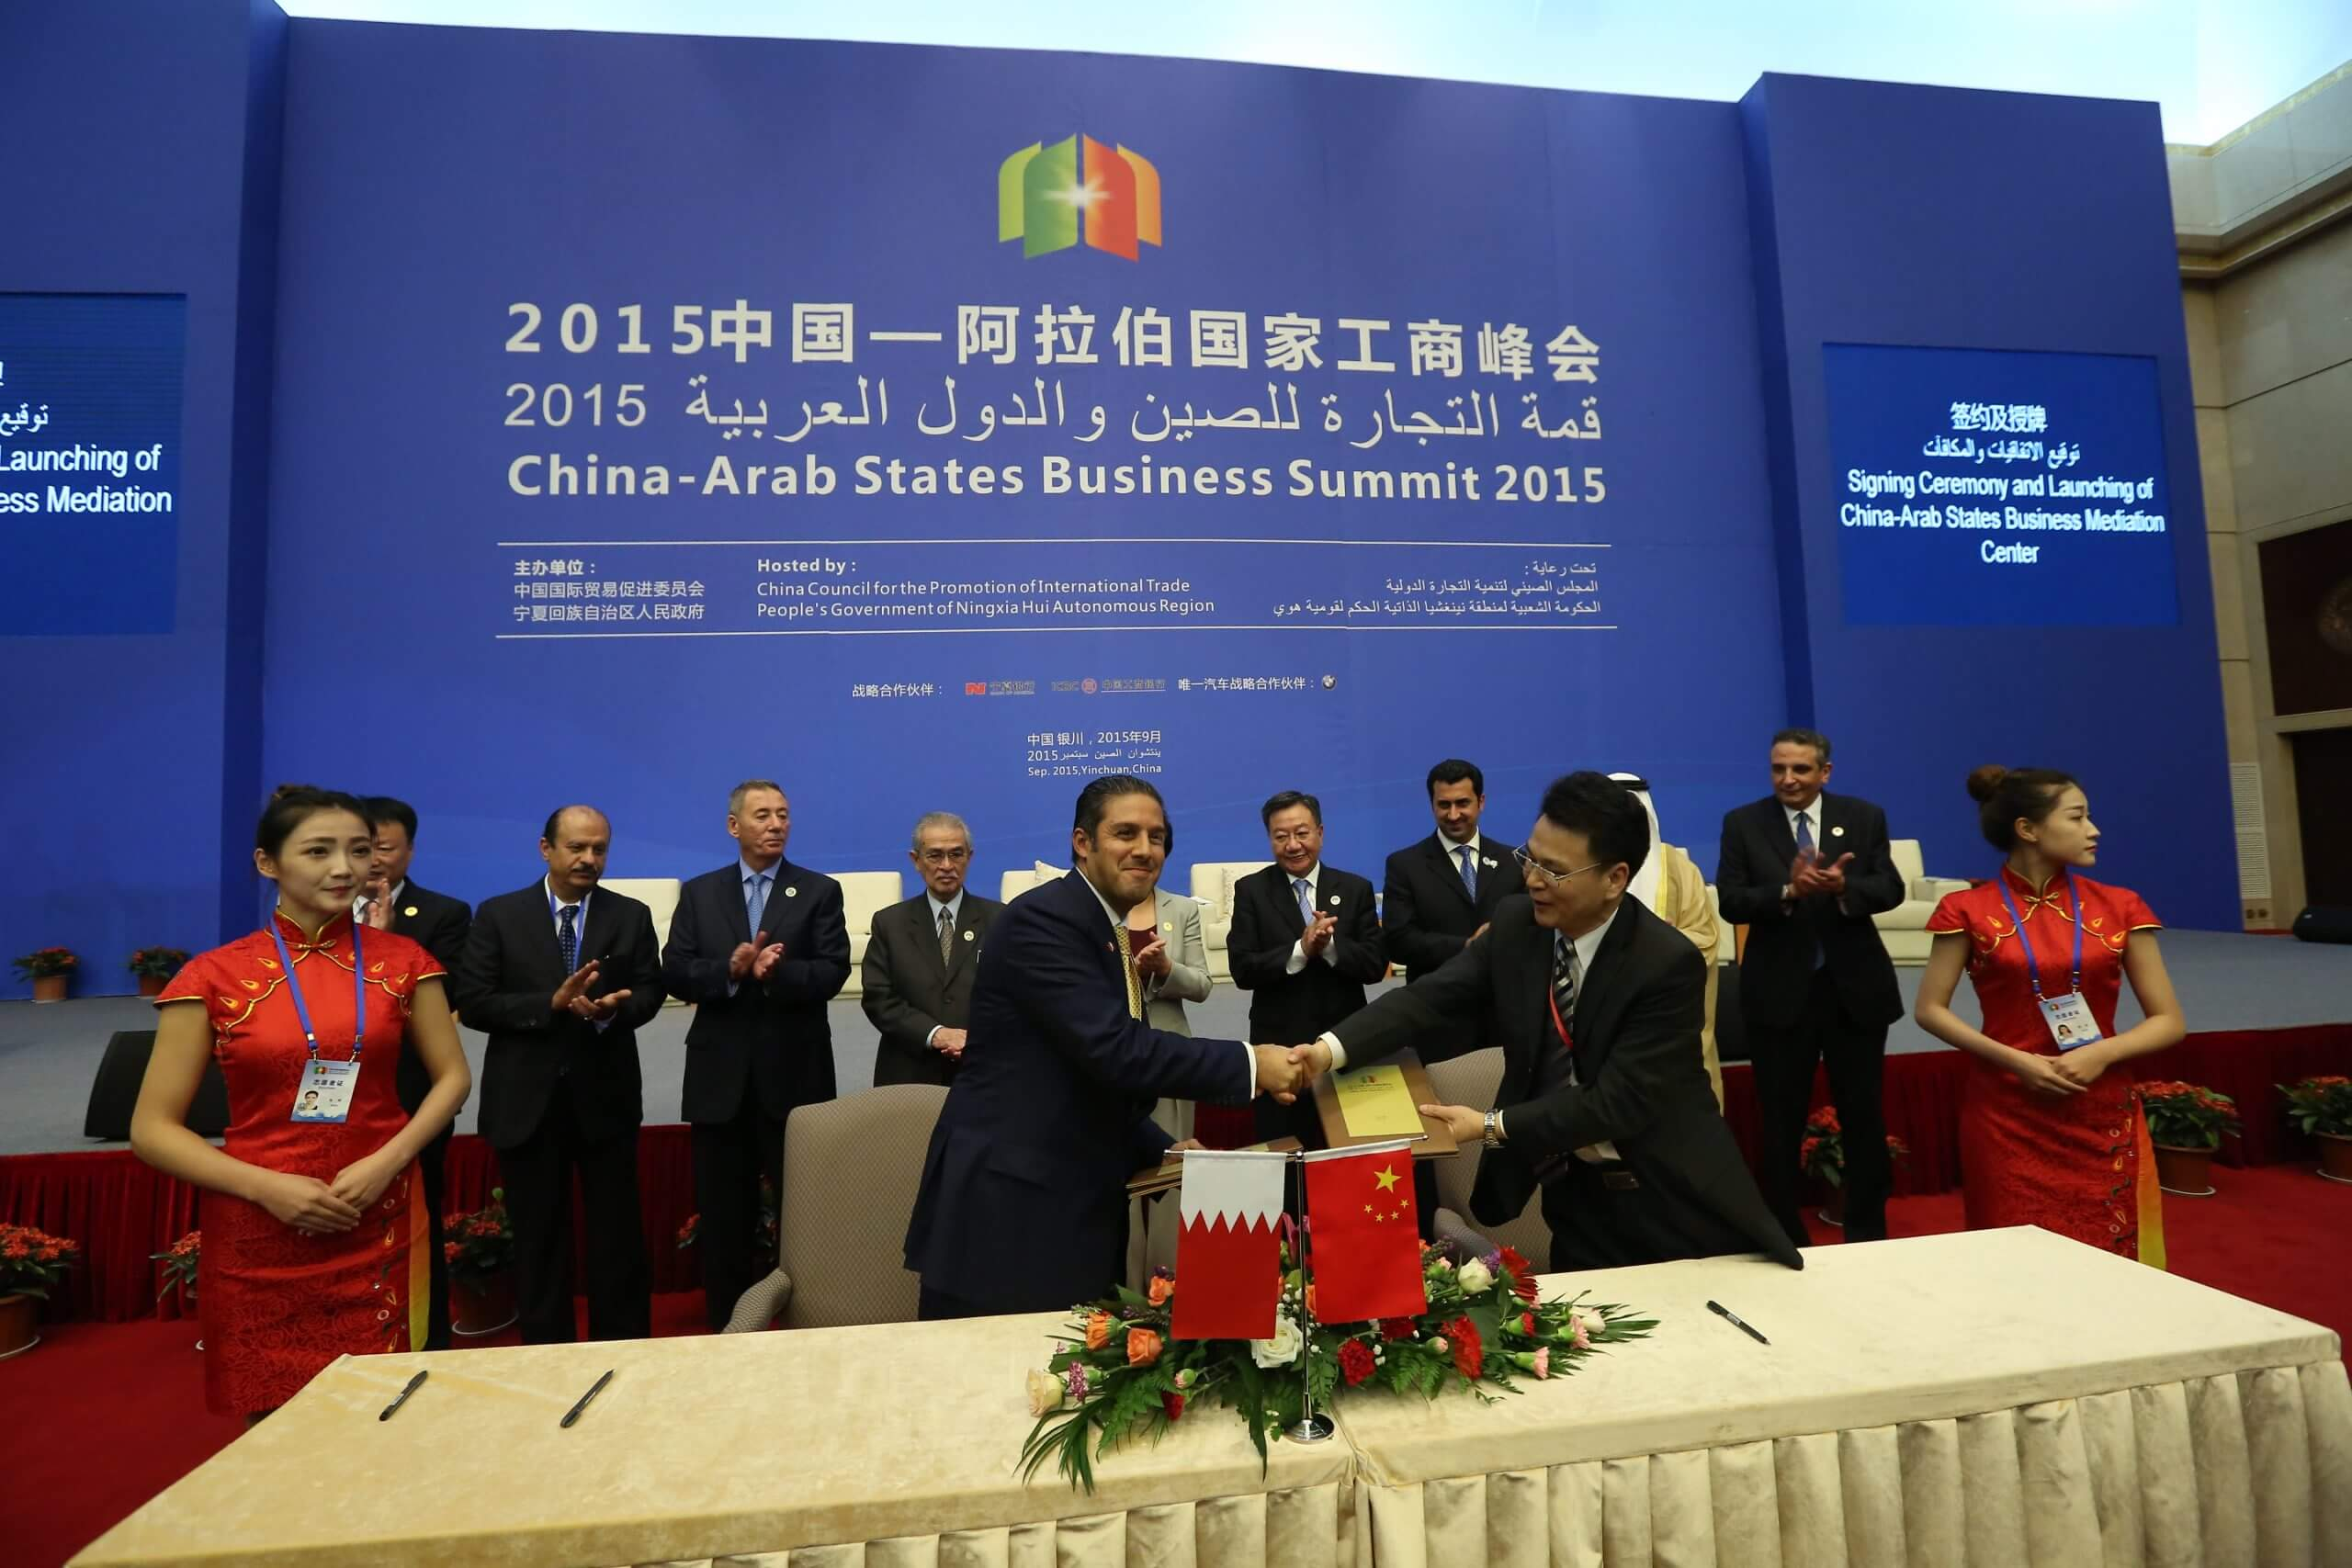 Bahrain signs an agreement in Yinchuan to promote stronger economic ties